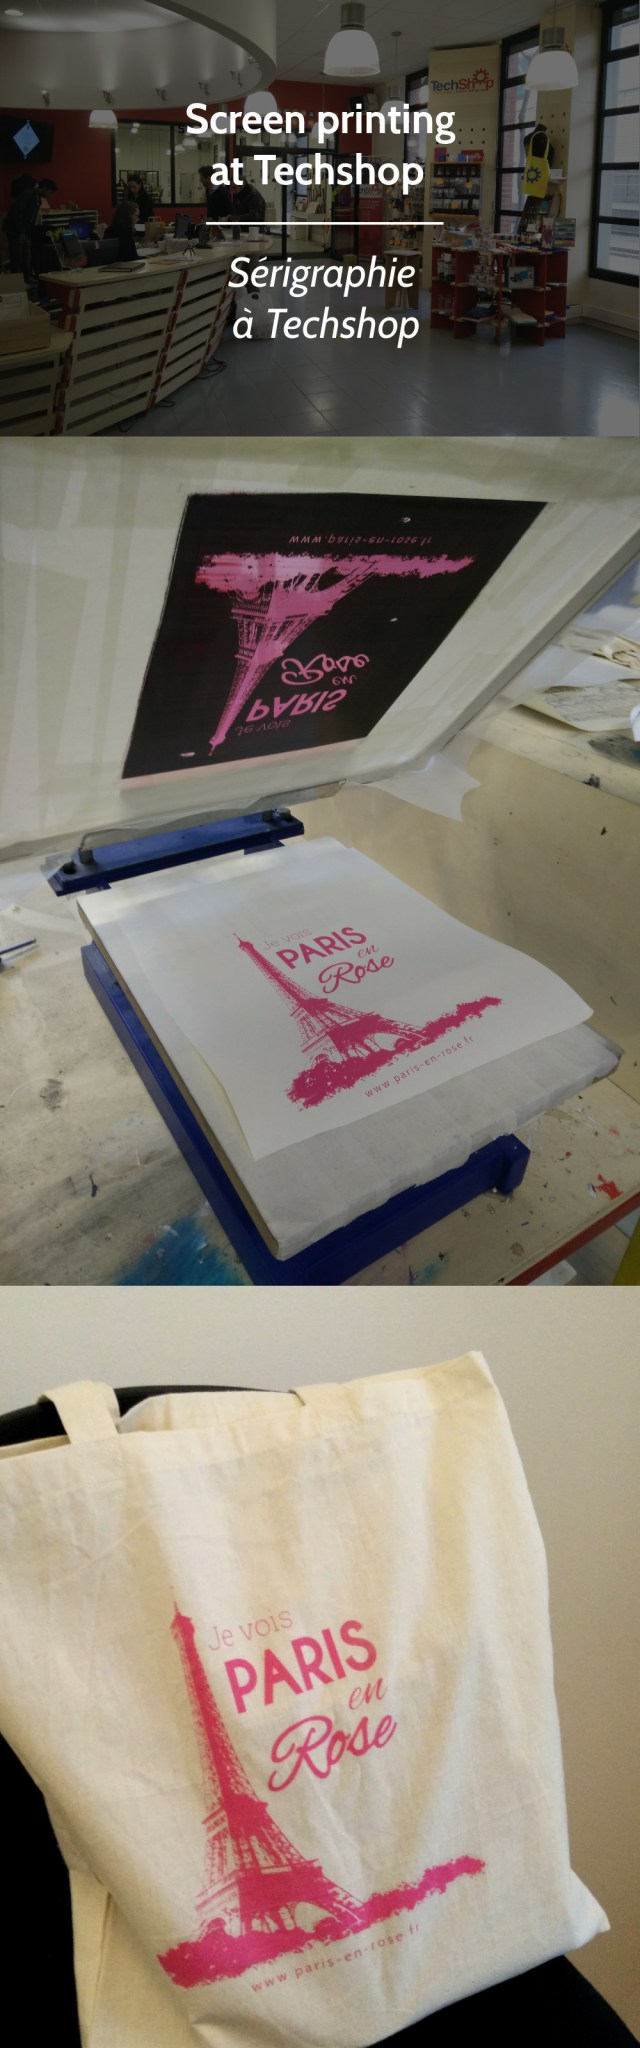 Screen printing at Techshop